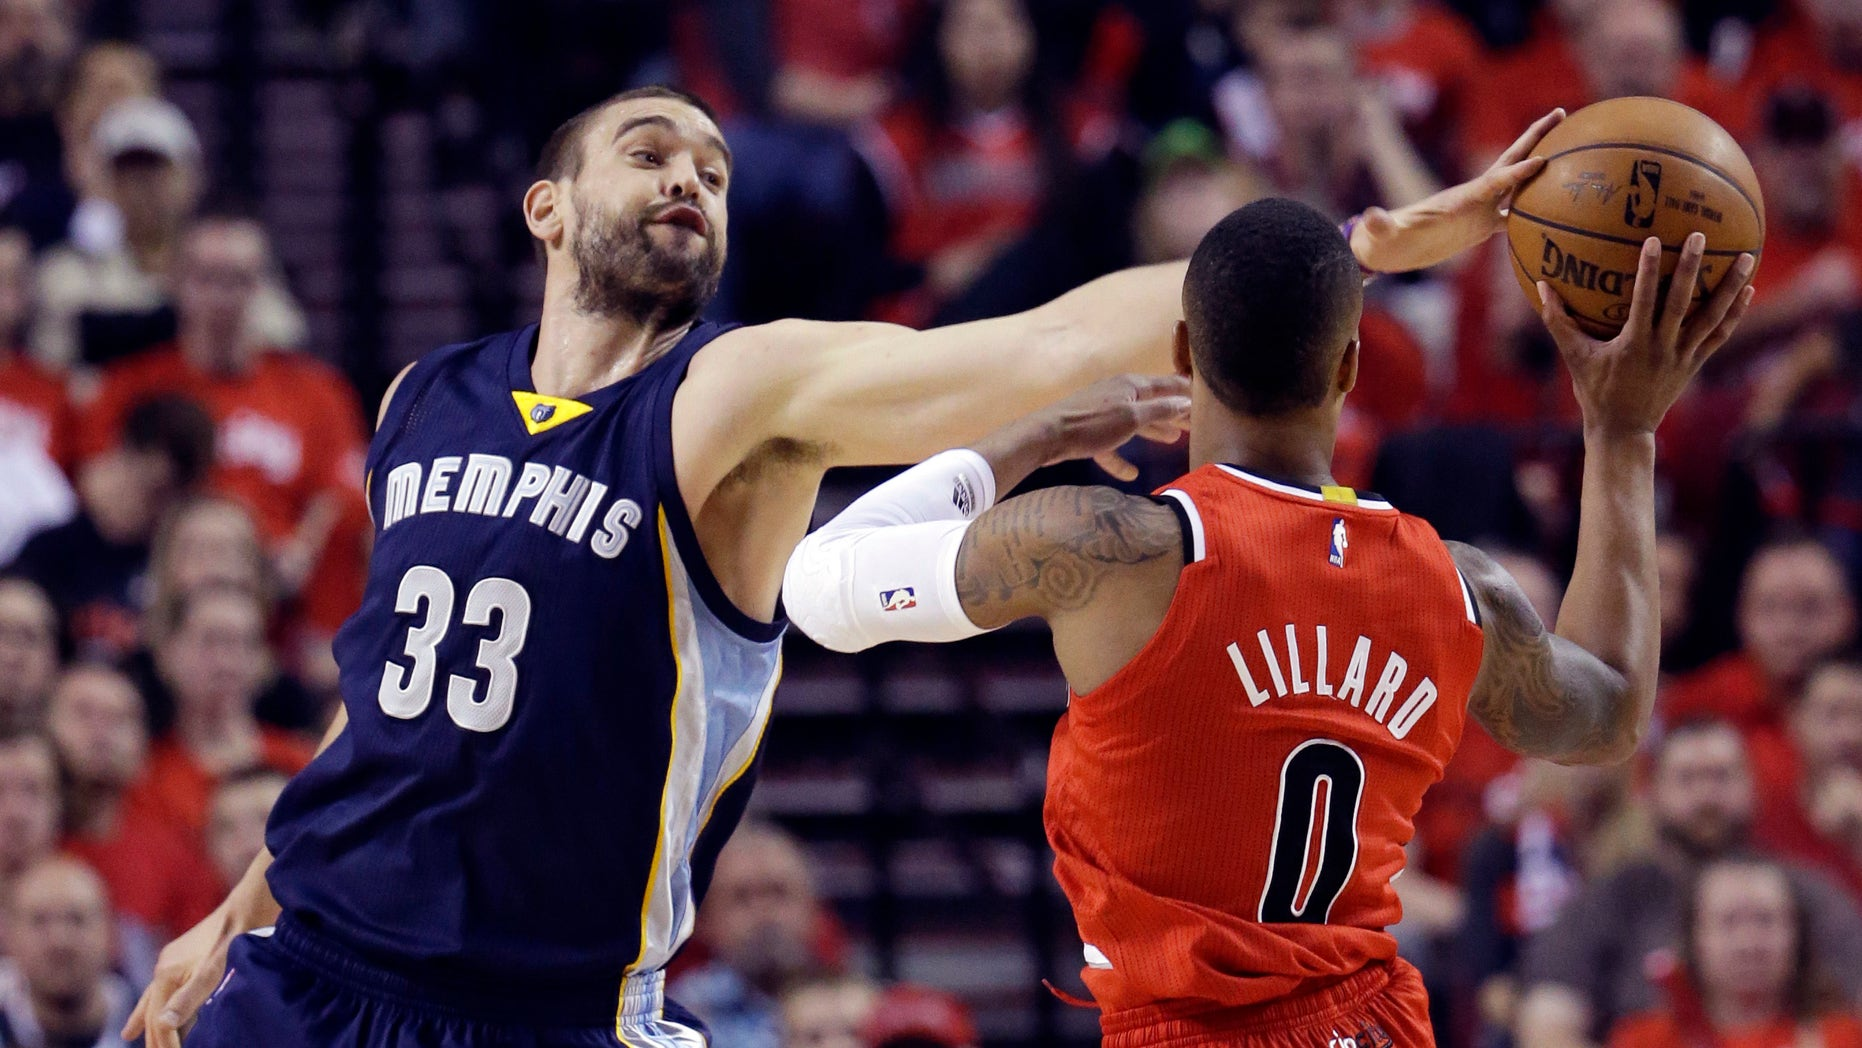 Memphis Grizzlies center Marc Gasol, left, gets a piece of the ball while defending Portland Trail Blazers guard Damian Lillard during the first half of Game 3 of a first-round NBA basketball playoff series in Portland, Ore., Saturday, April 25, 2015. (AP Photo/Don Ryan)